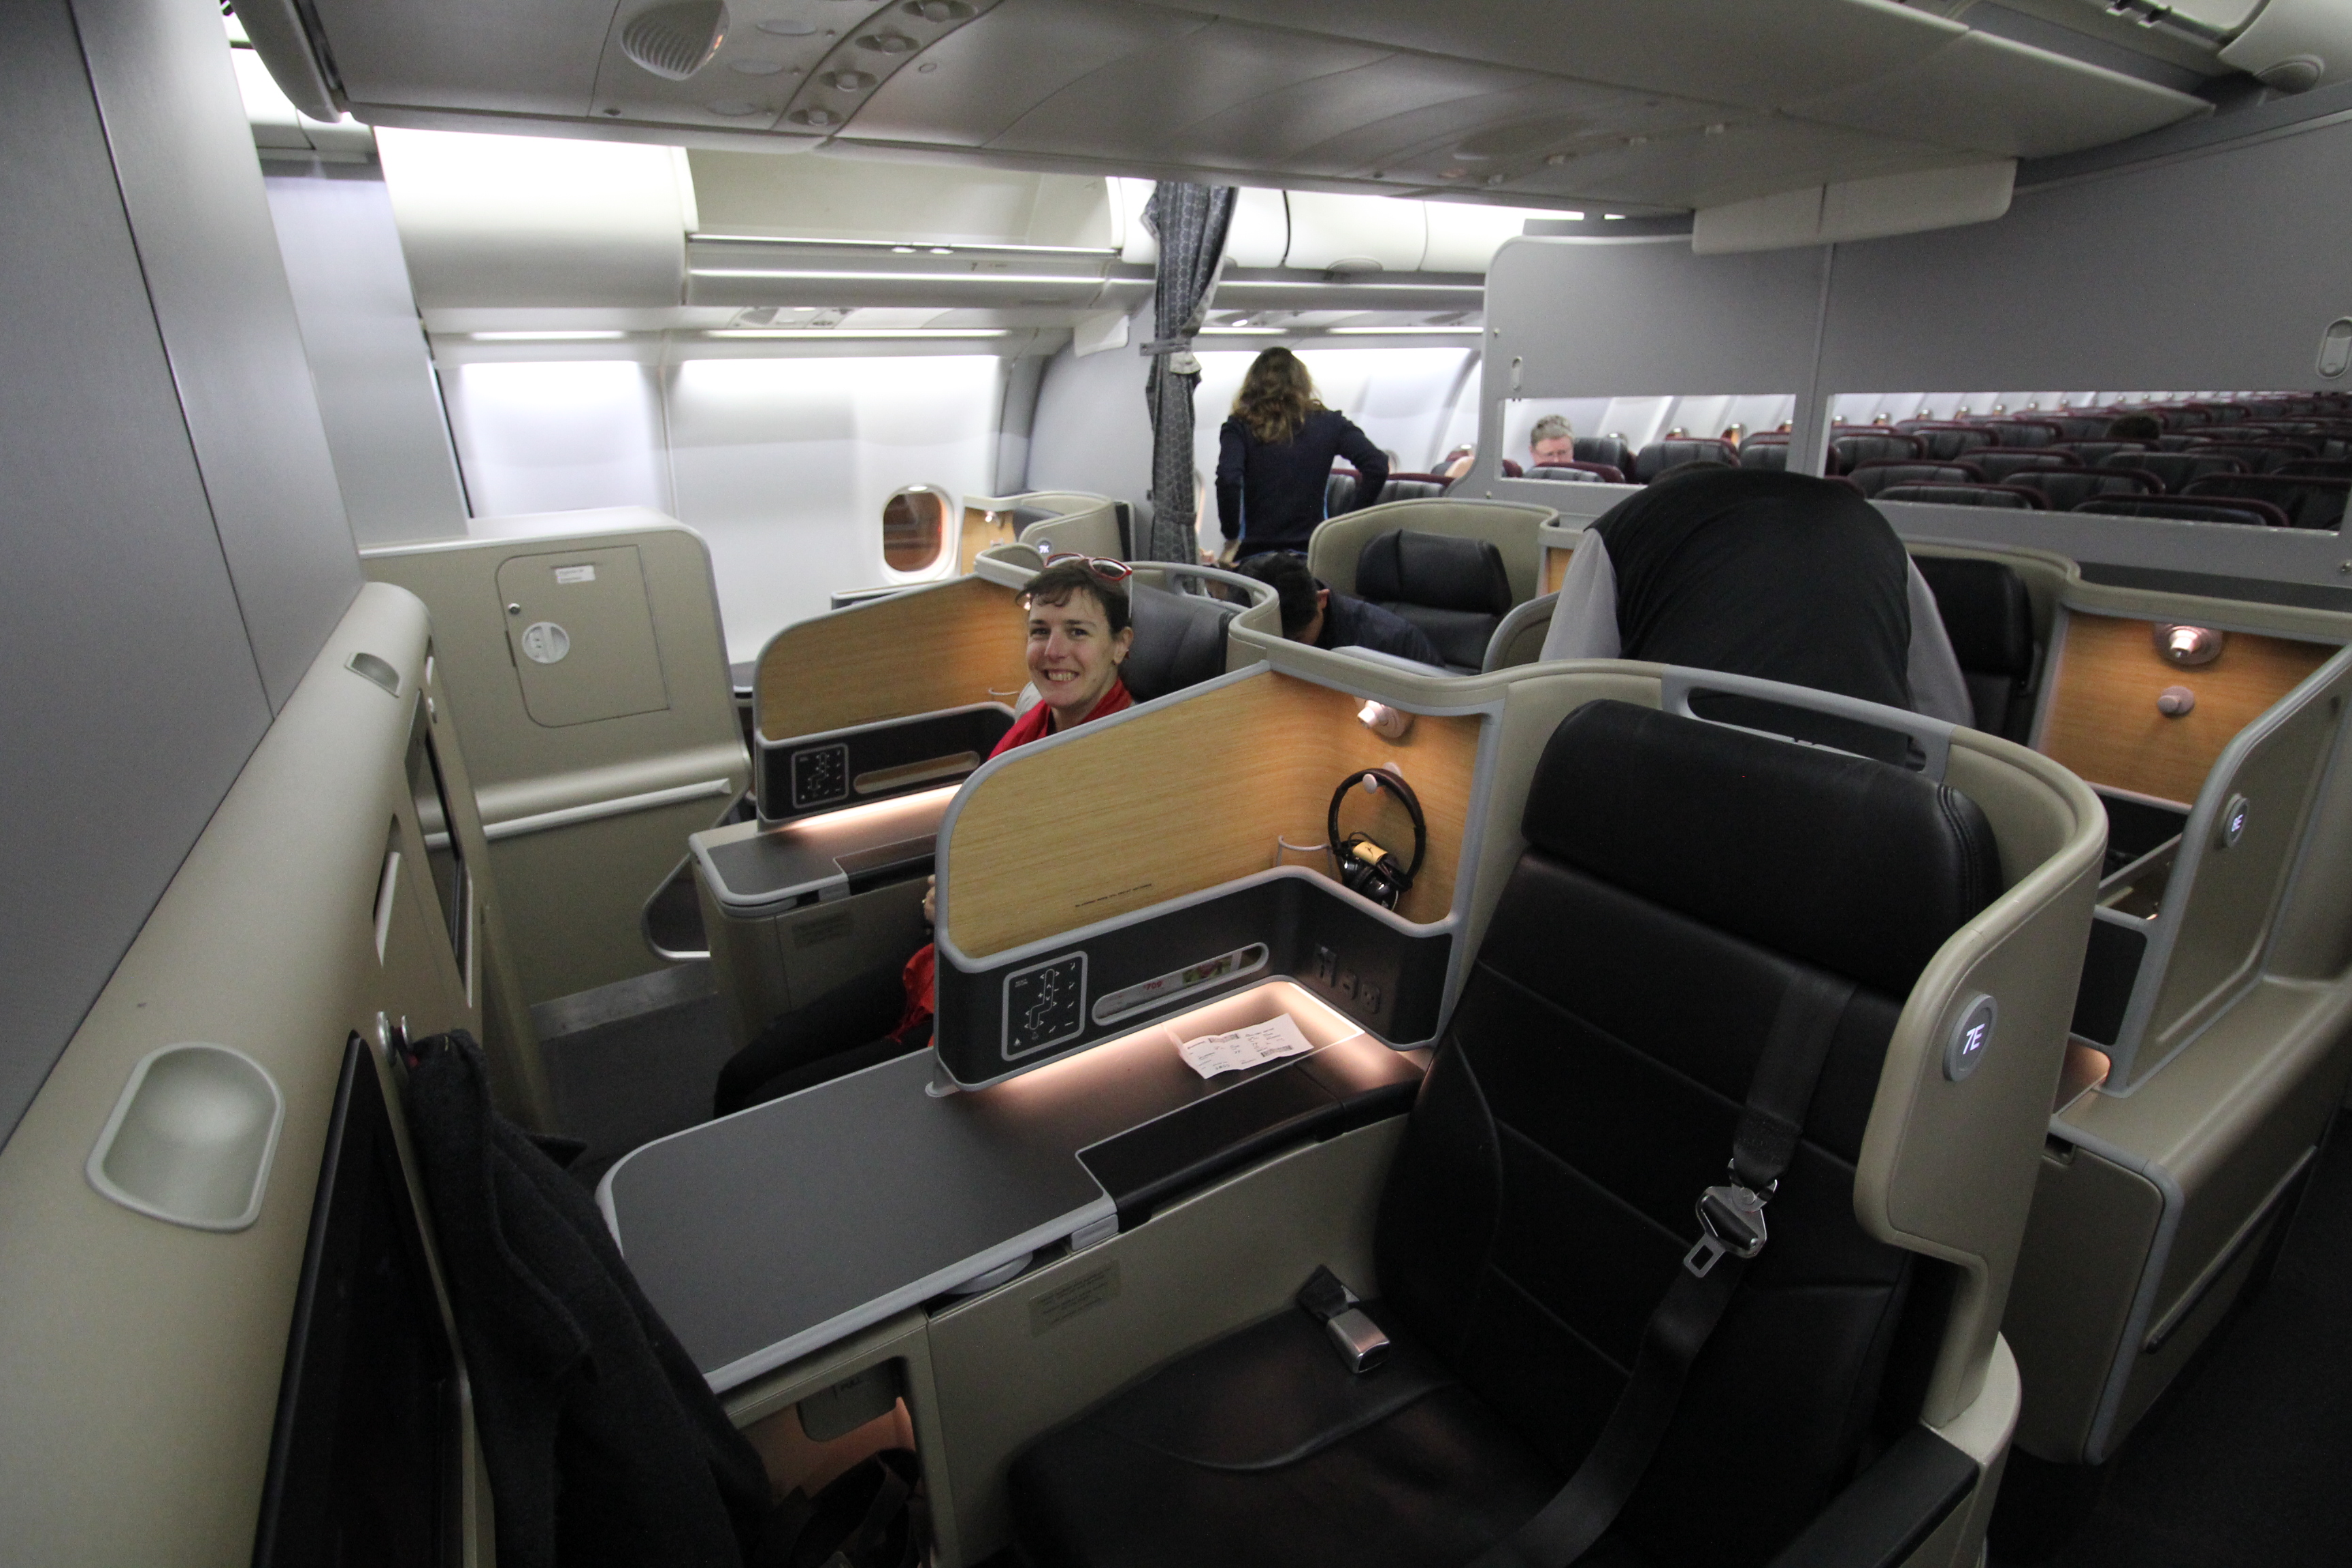 Qantas A330 Domestic Business Class